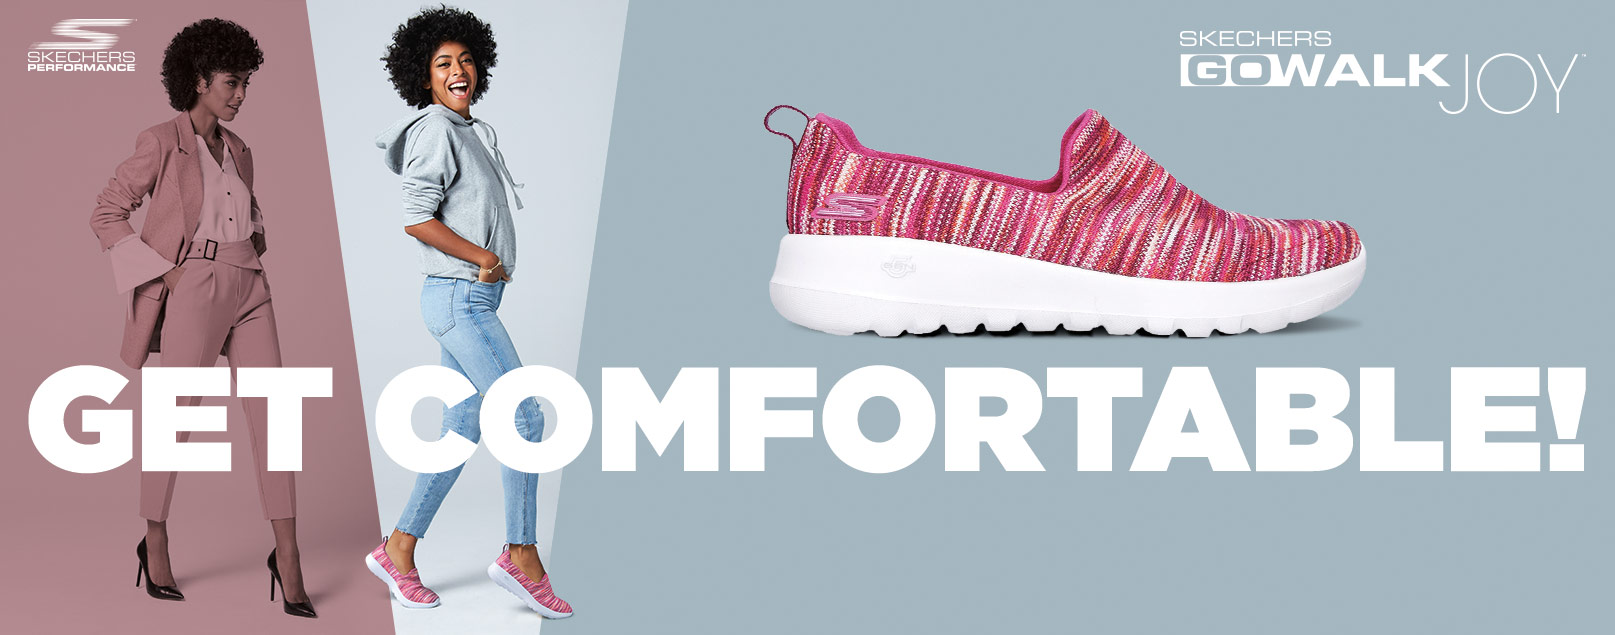 SKECHERS GOWalk Joy Get Comfortable!